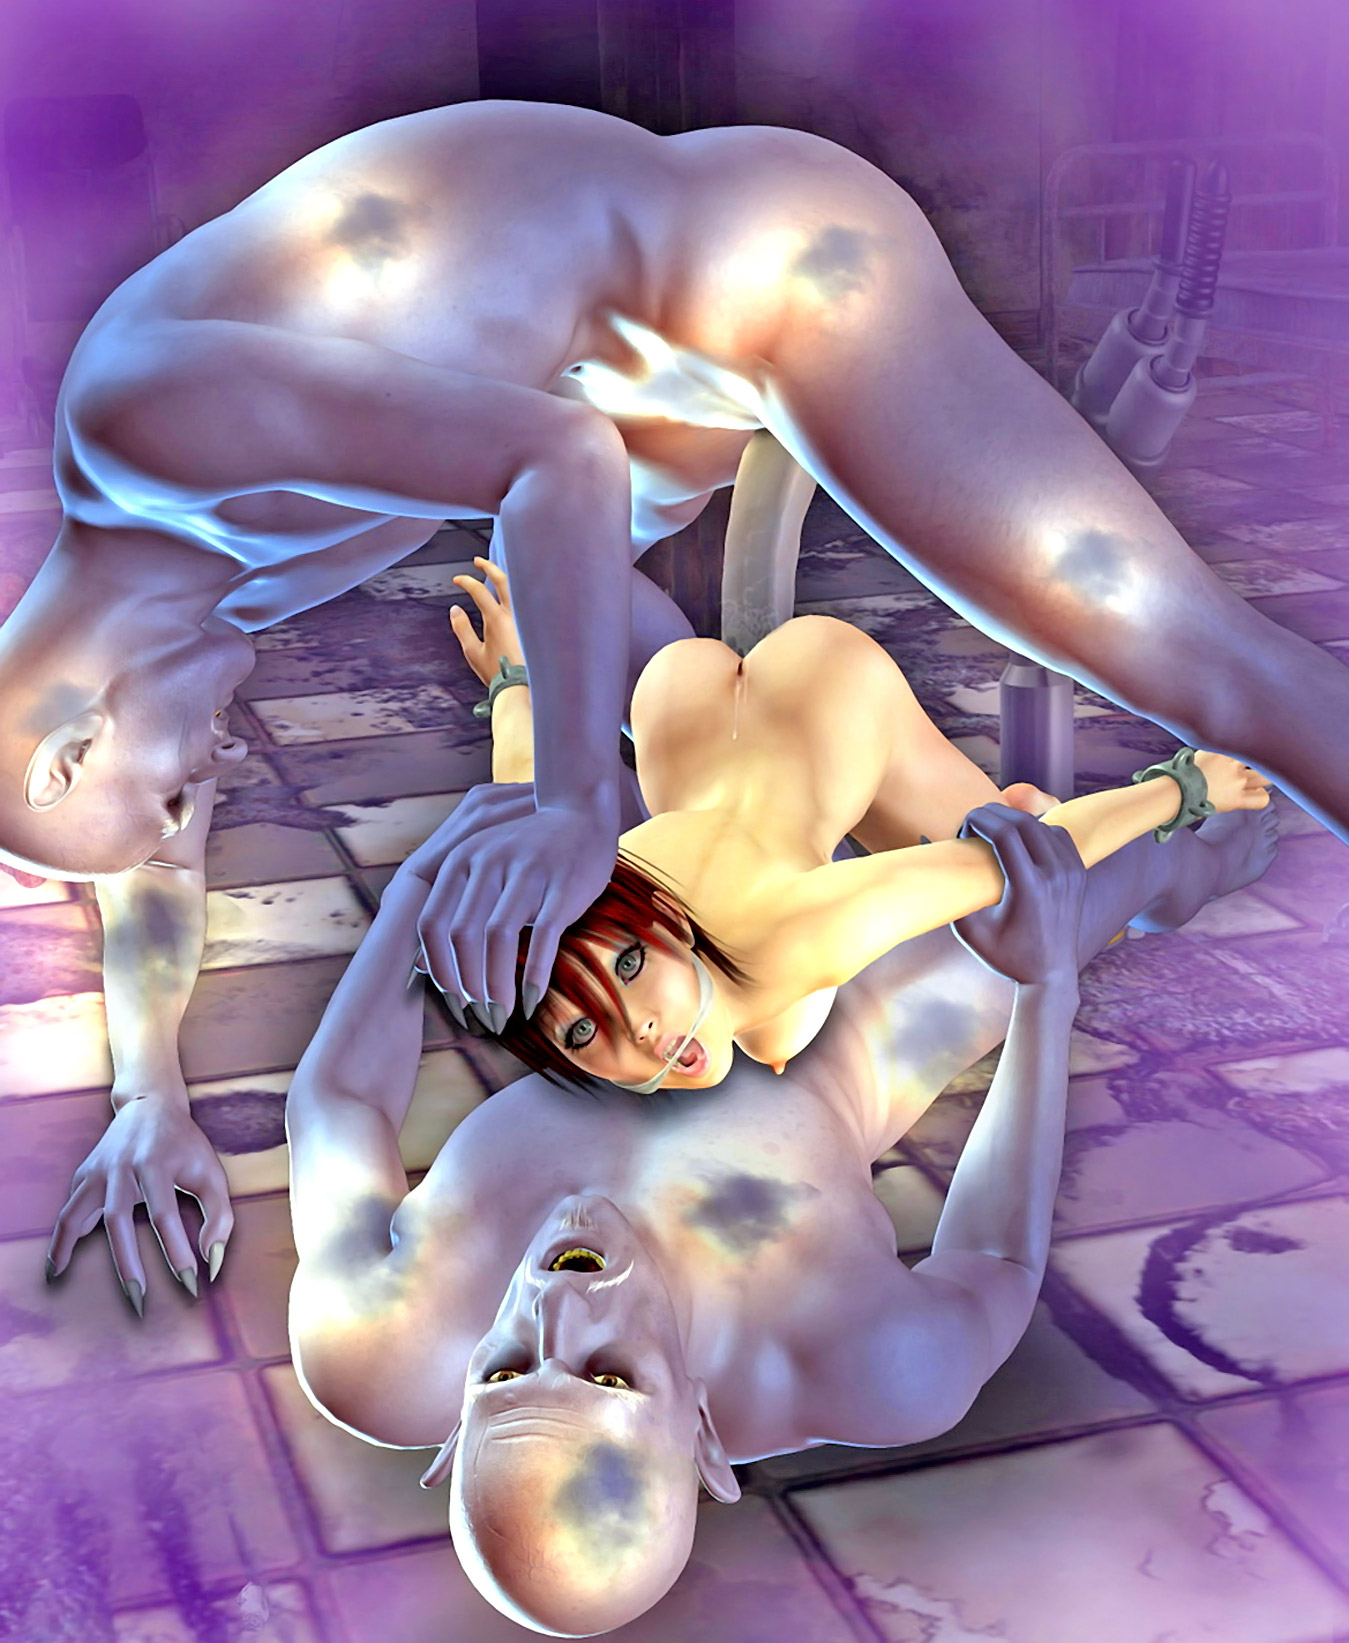 Erotic 3d monster sex stories hentia picture